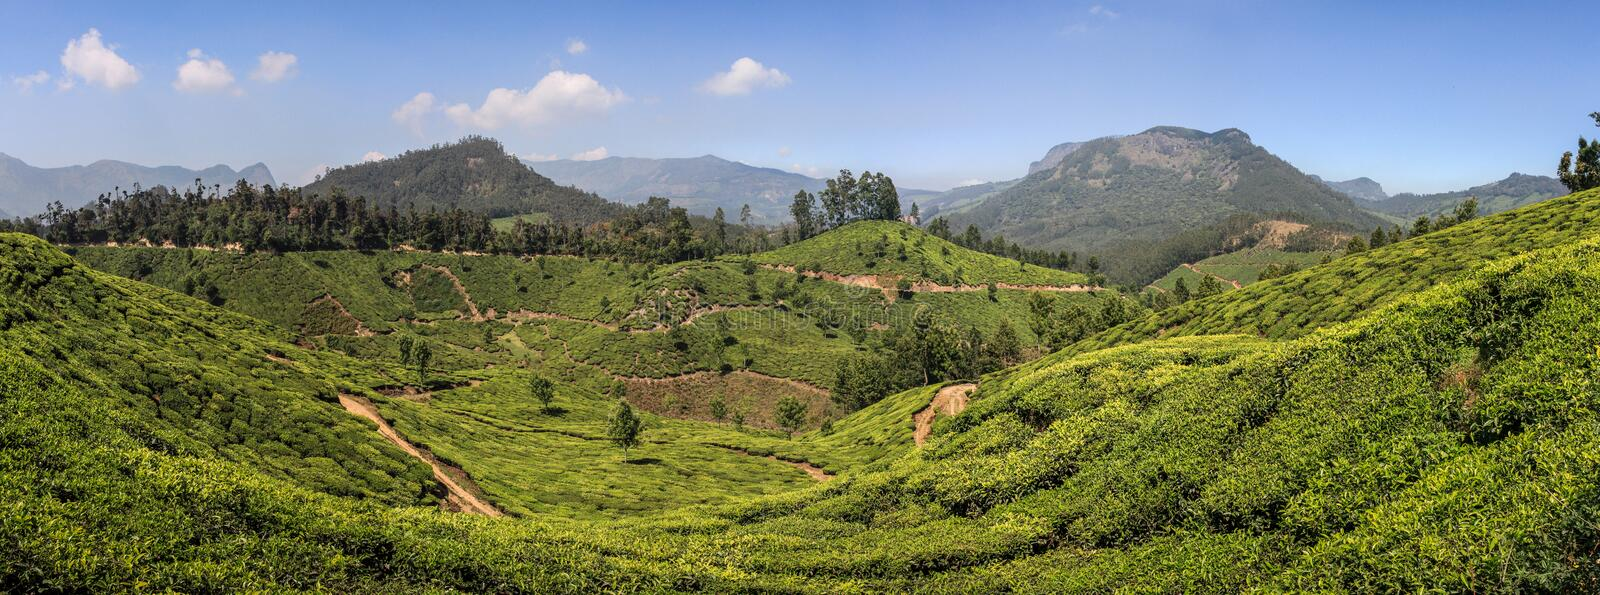 Panoramic view of the green lush tea hills and mountains around Munnar, Kerala, India. Munnar is a town and hill station located in the Idukki district of the stock images